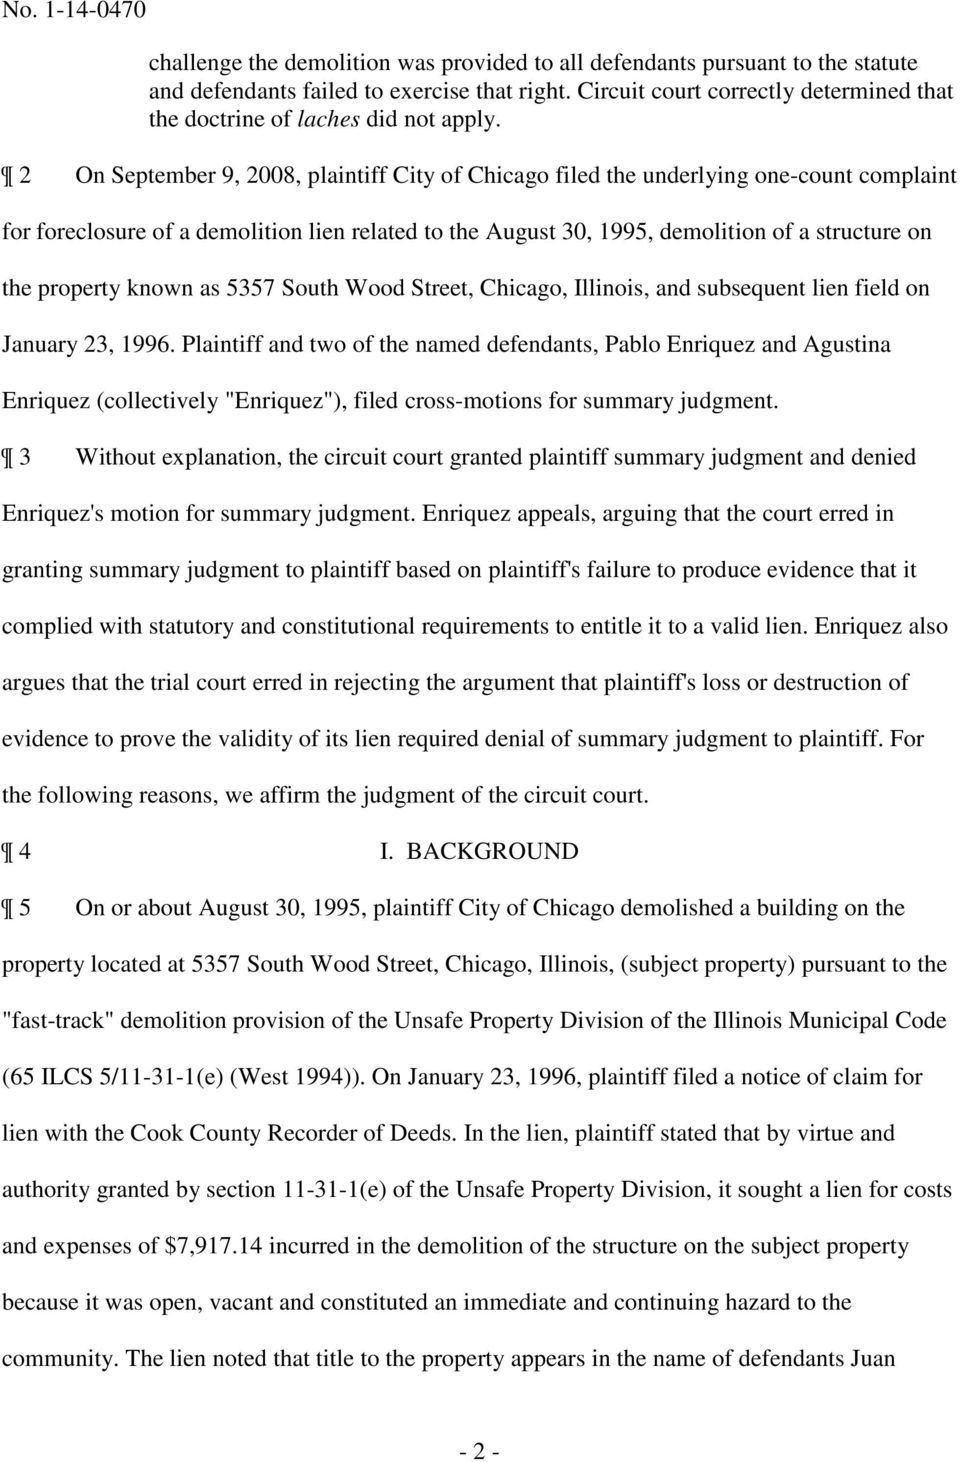 2 On September 9, 2008, plaintiff City of Chicago filed the underlying one-count complaint for foreclosure of a demolition lien related to the August 30, 1995, demolition of a structure on the